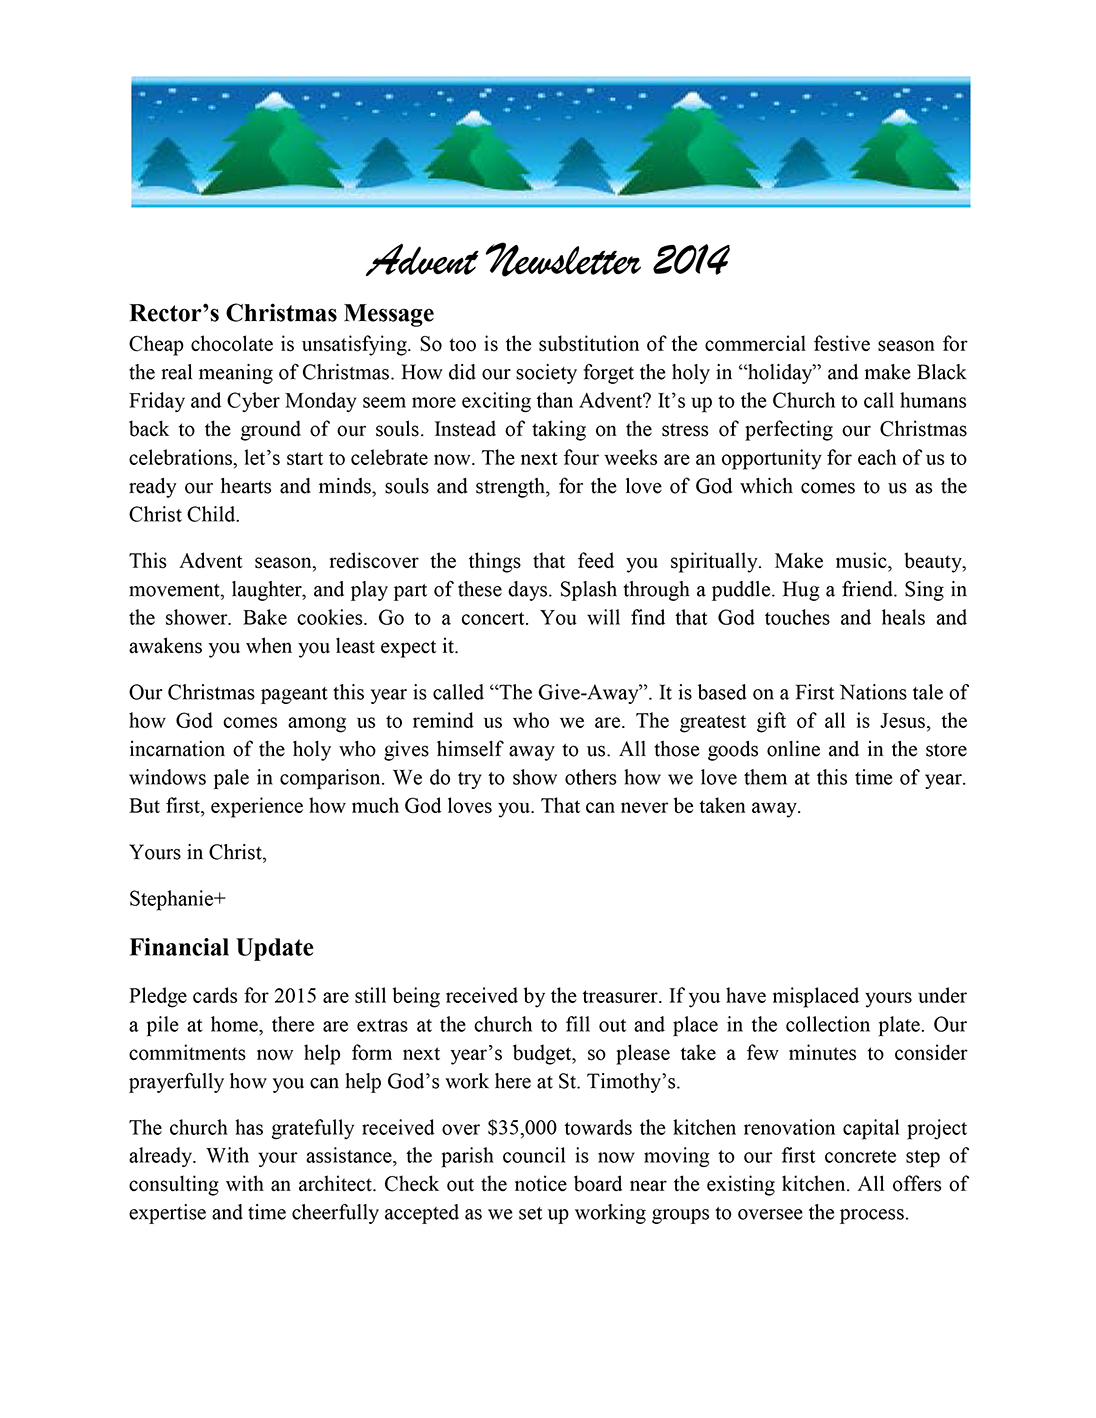 Newsletter: Advent 2014